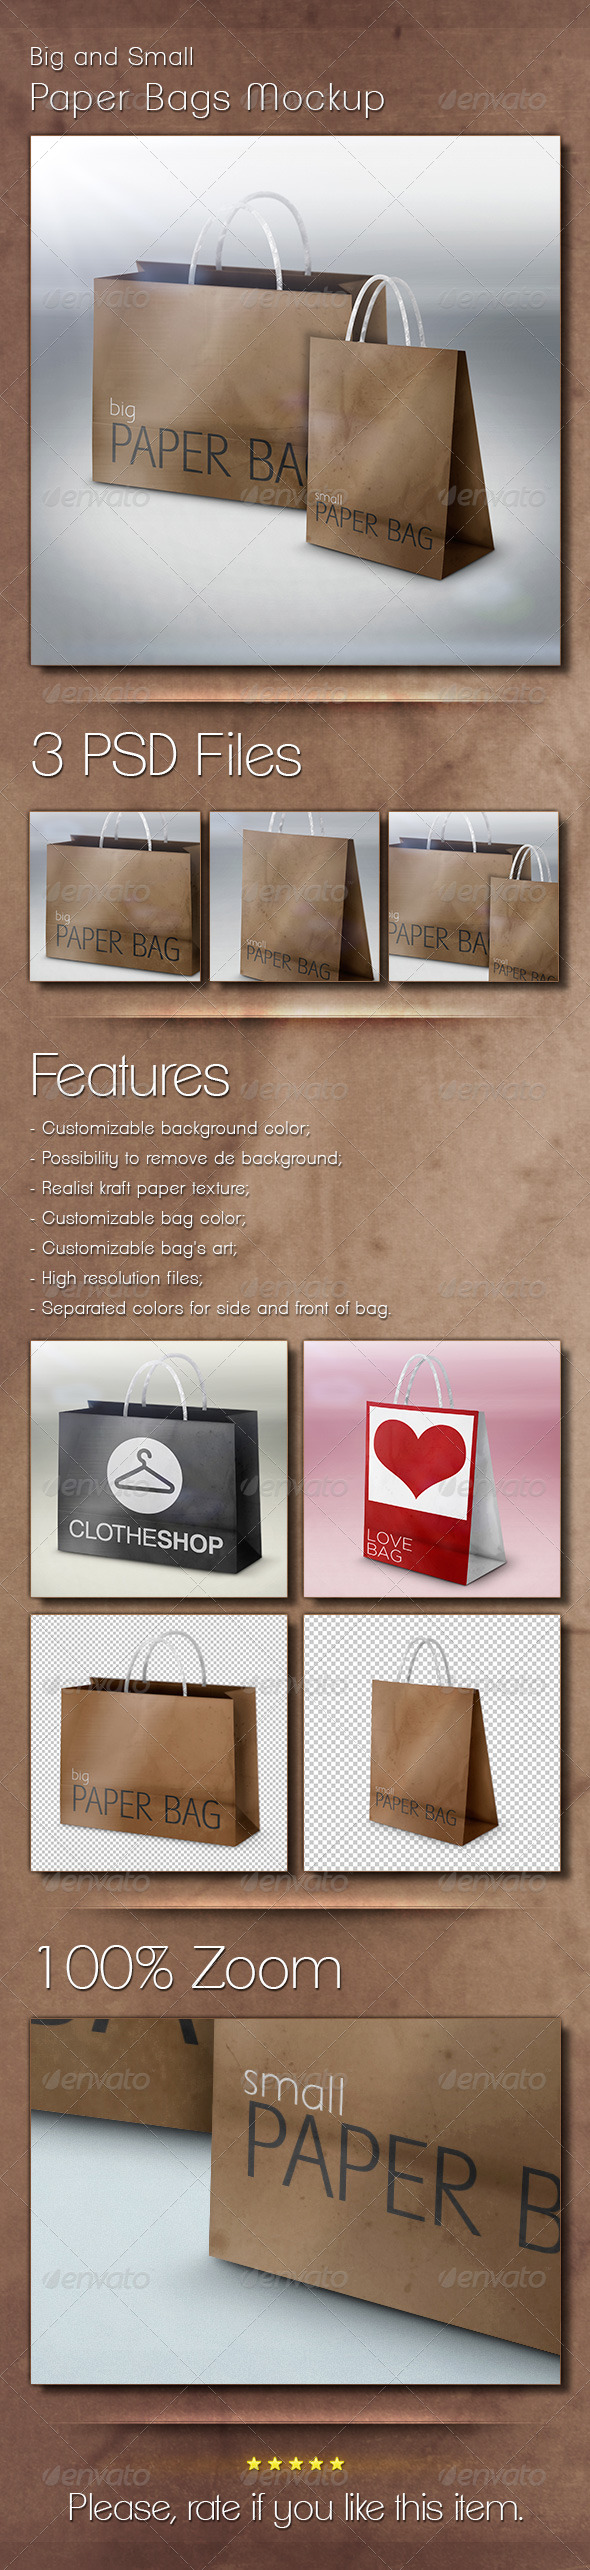 Big and Small Paper Bags Mockup - Graphics